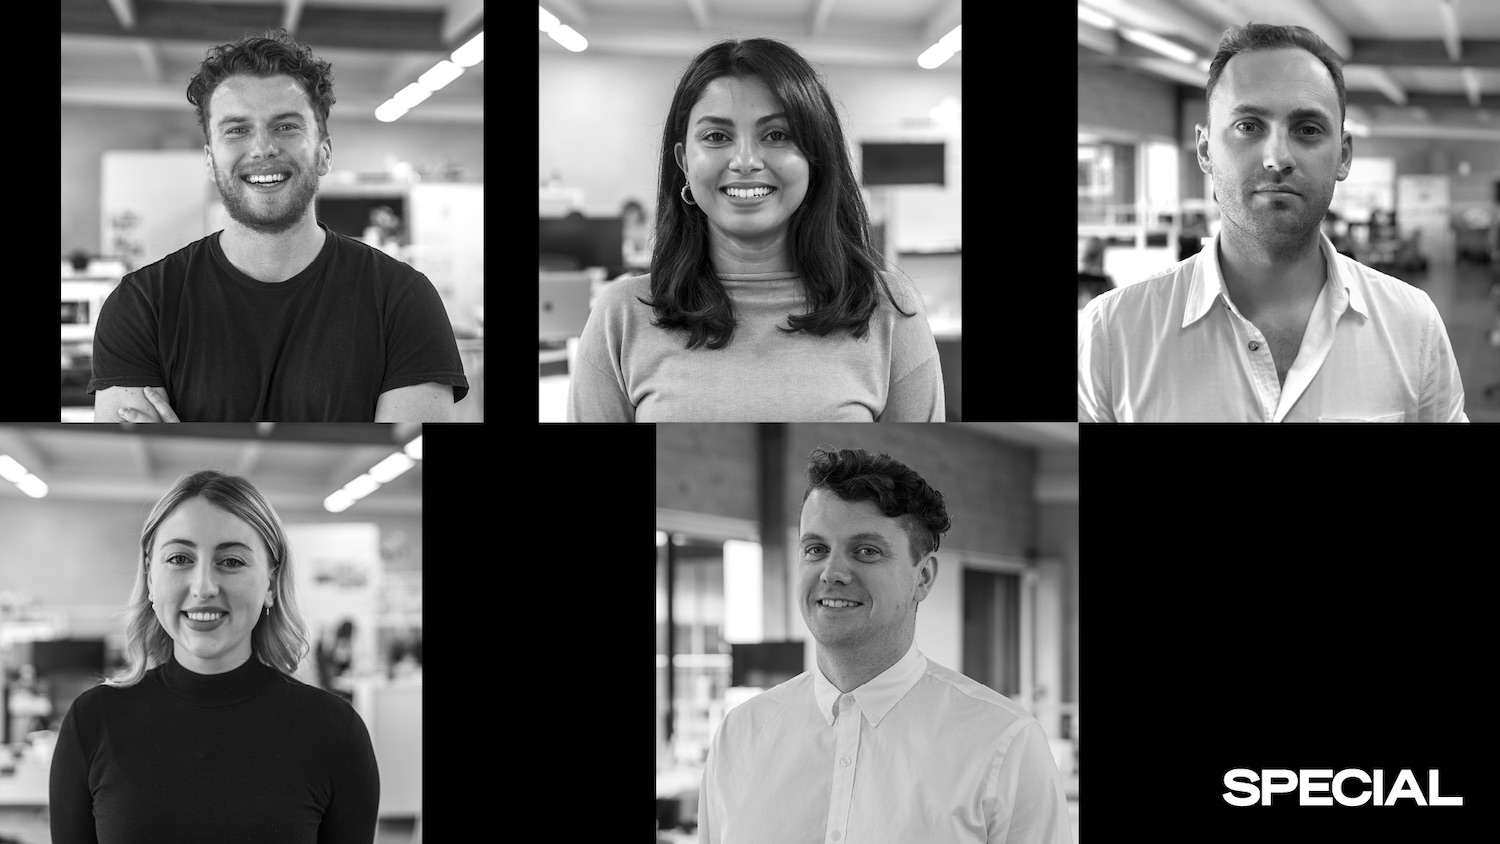 Special Group strengthens strategy department with new promotions and appointments